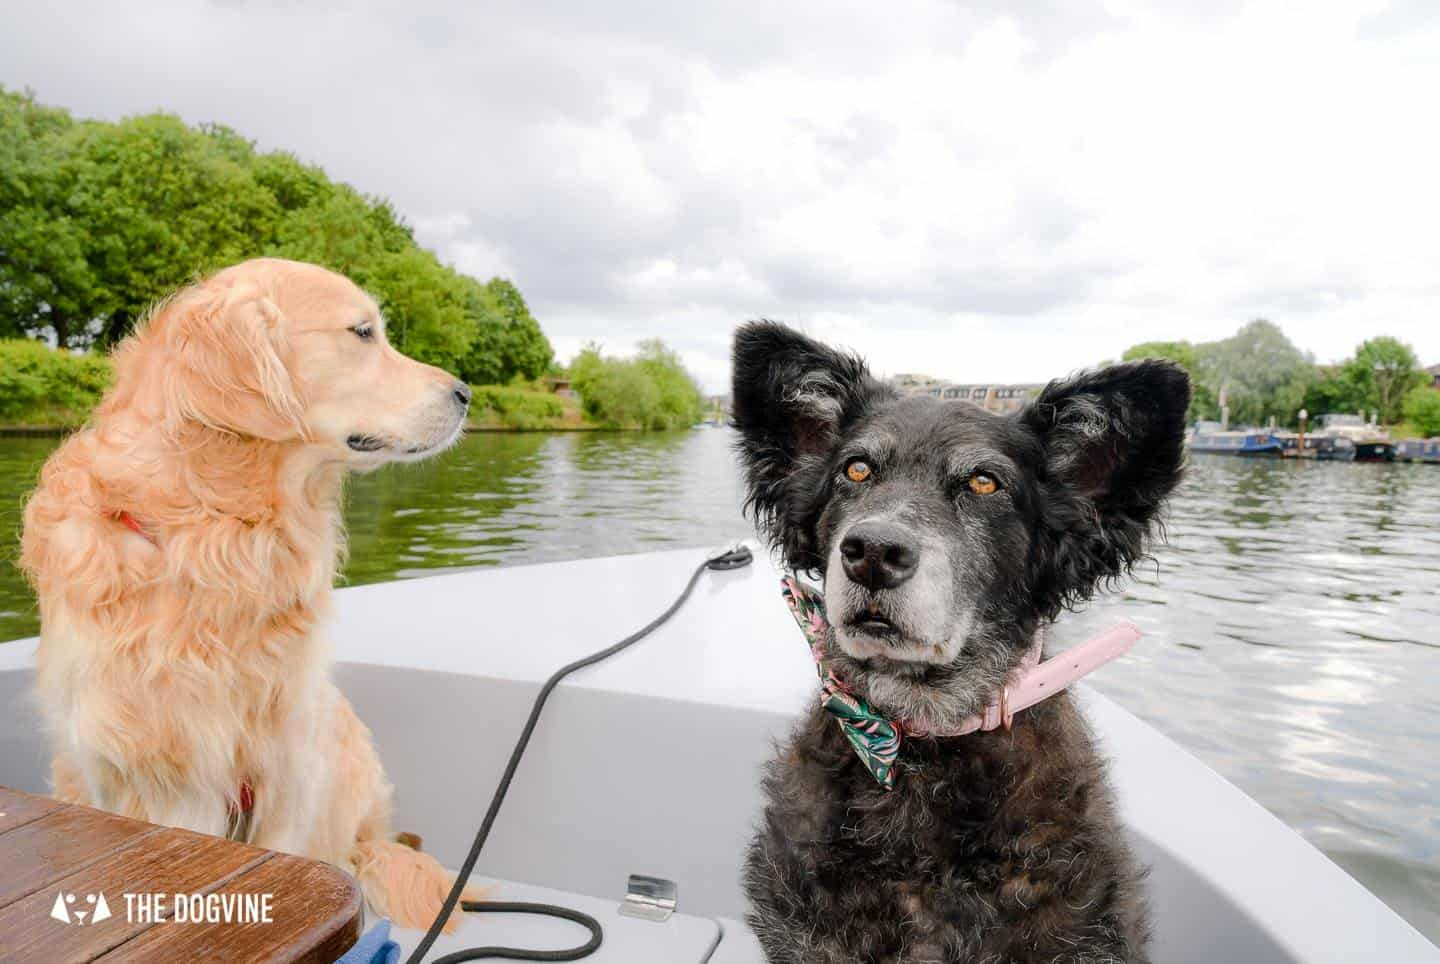 Dog-friendly Go Boat Kingston Upon Thames 17